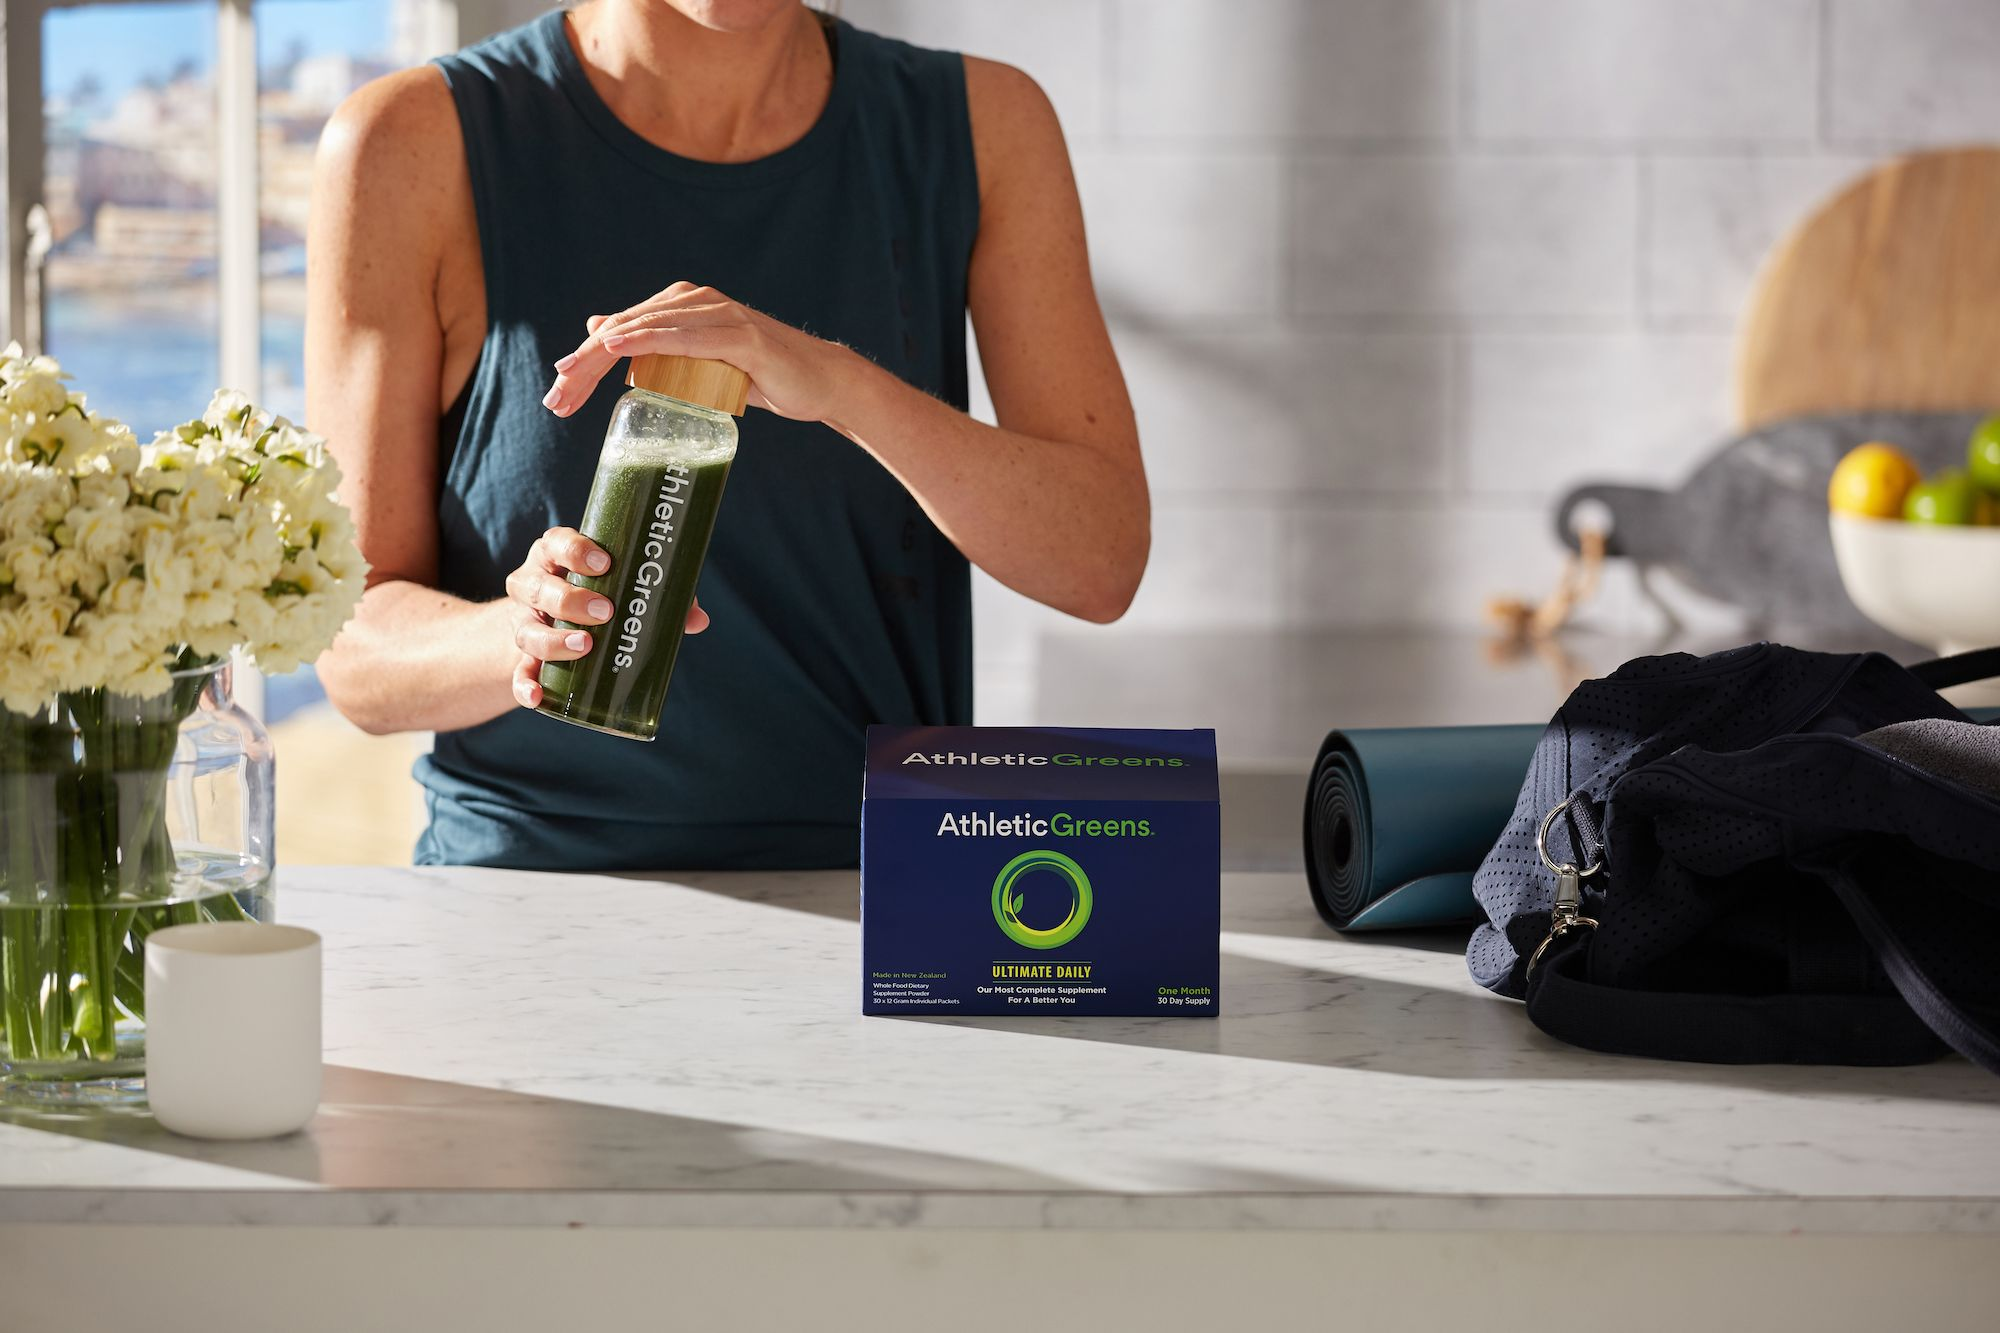 Tim Ferriss Recommends This $3 Per Serving Nutritional Drink